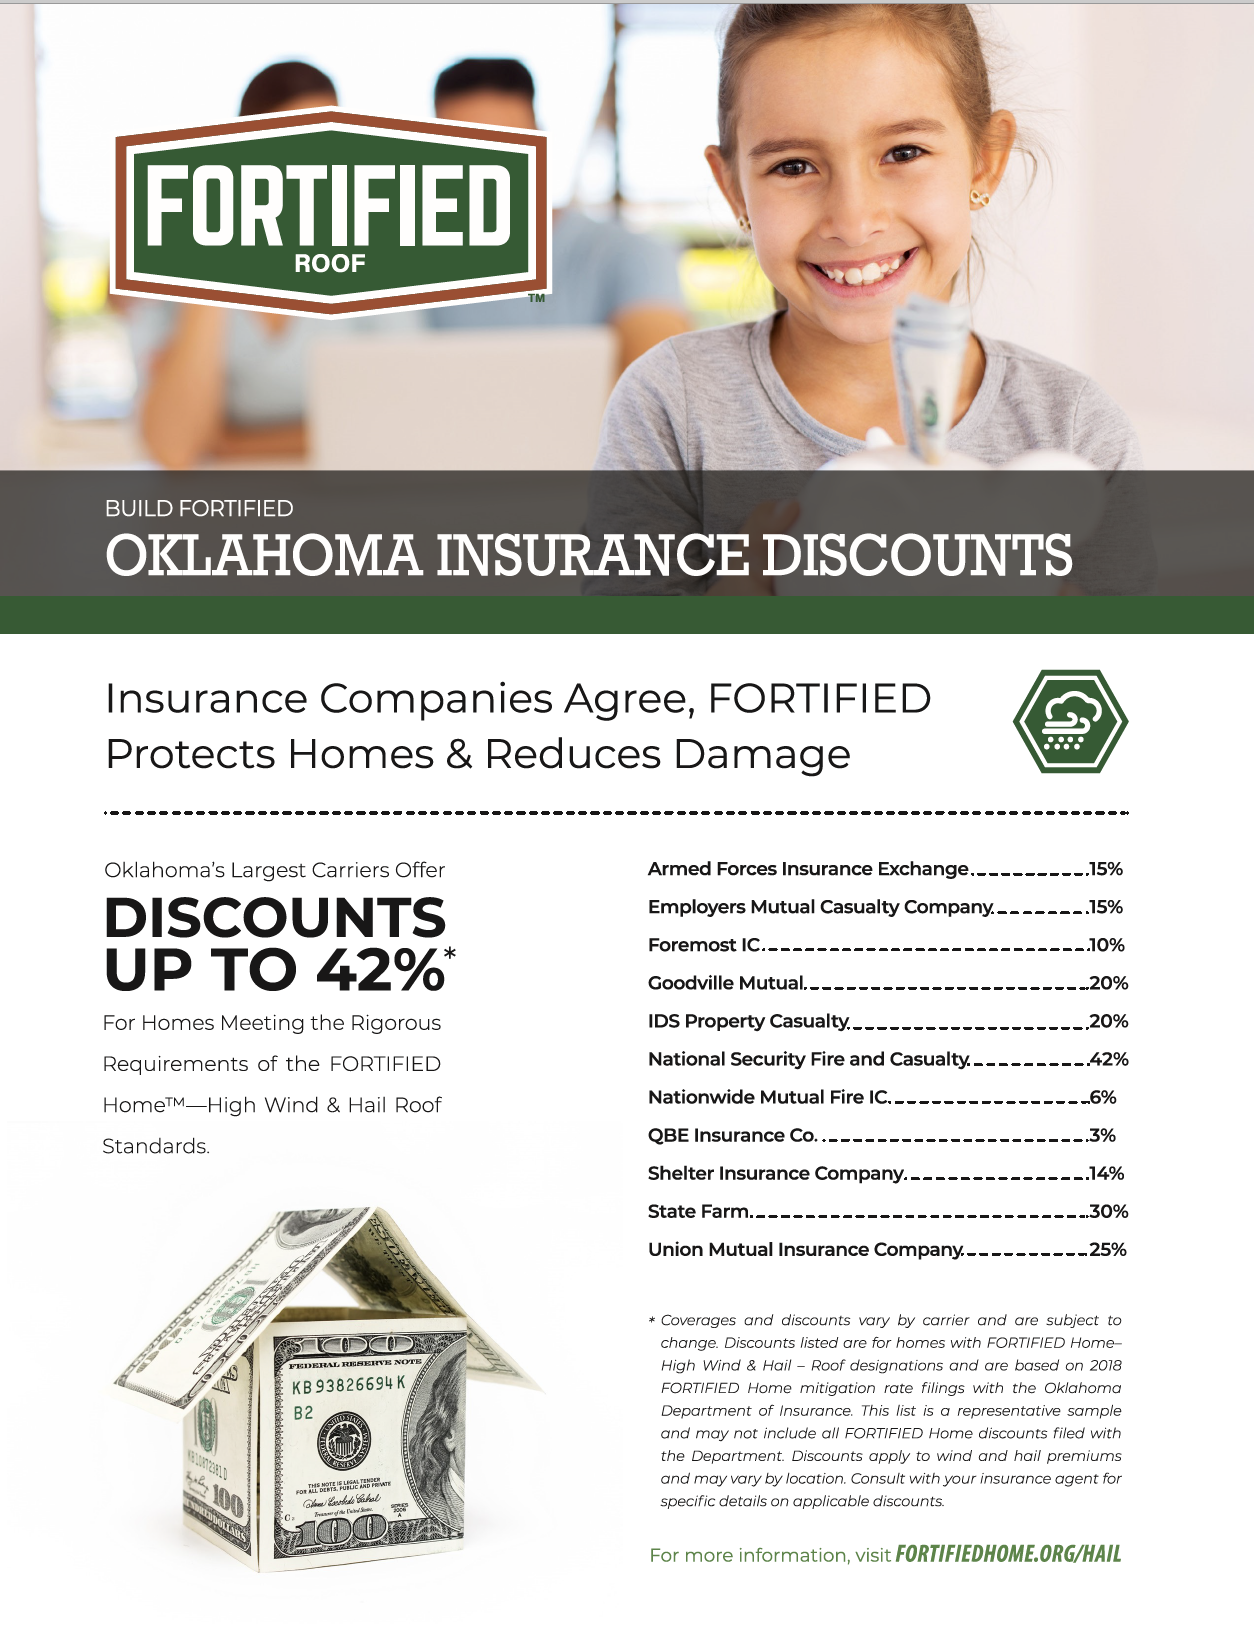 Oklahoma-FORTIFIED-Insurance-Discounts